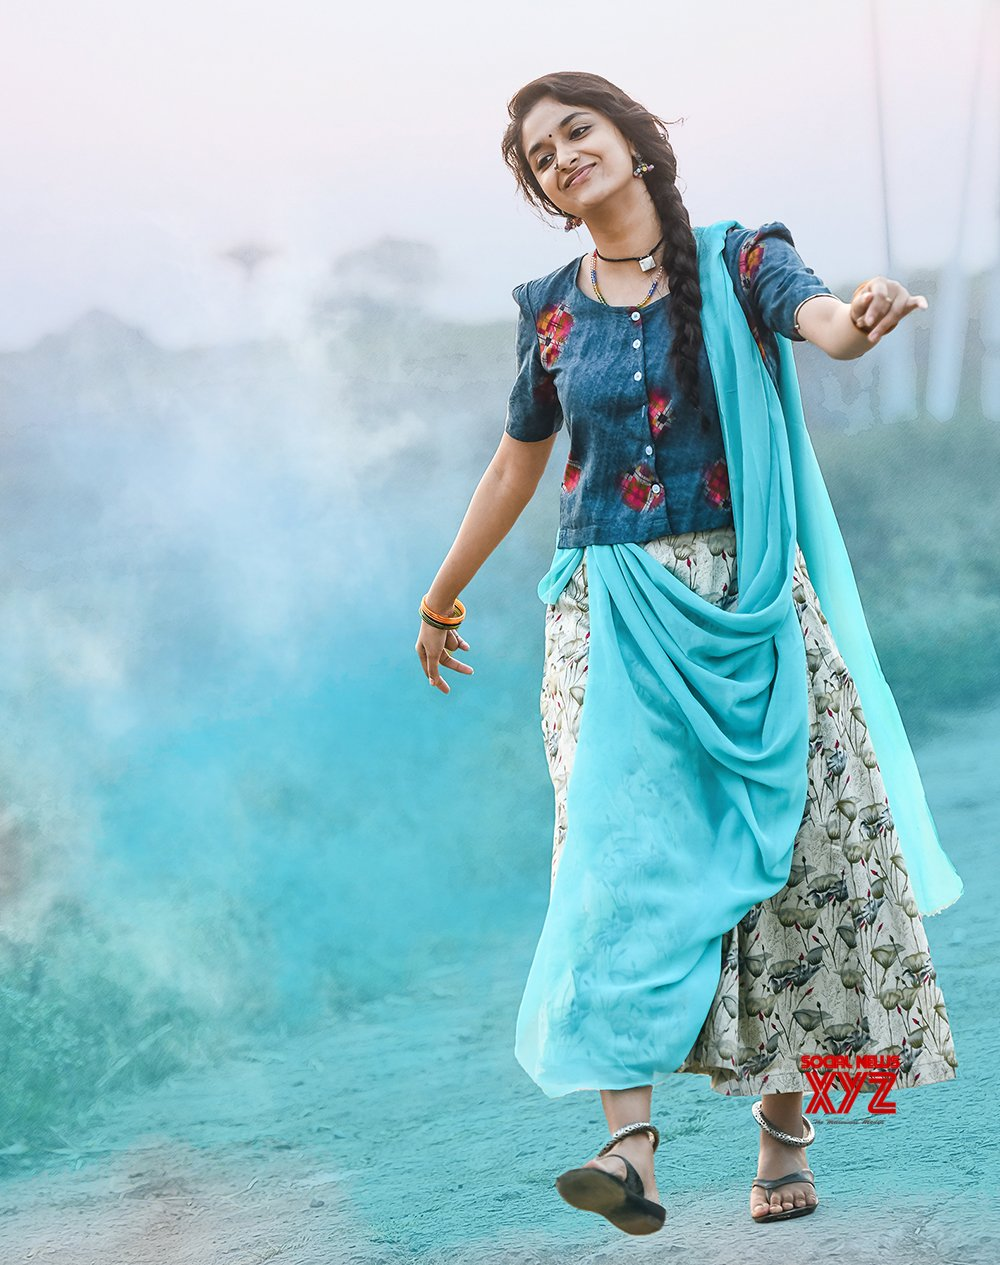 Keerthy Suresh Good Luck Sakhi Movie Teaser Launched By Prabhas - Social  News XYZ